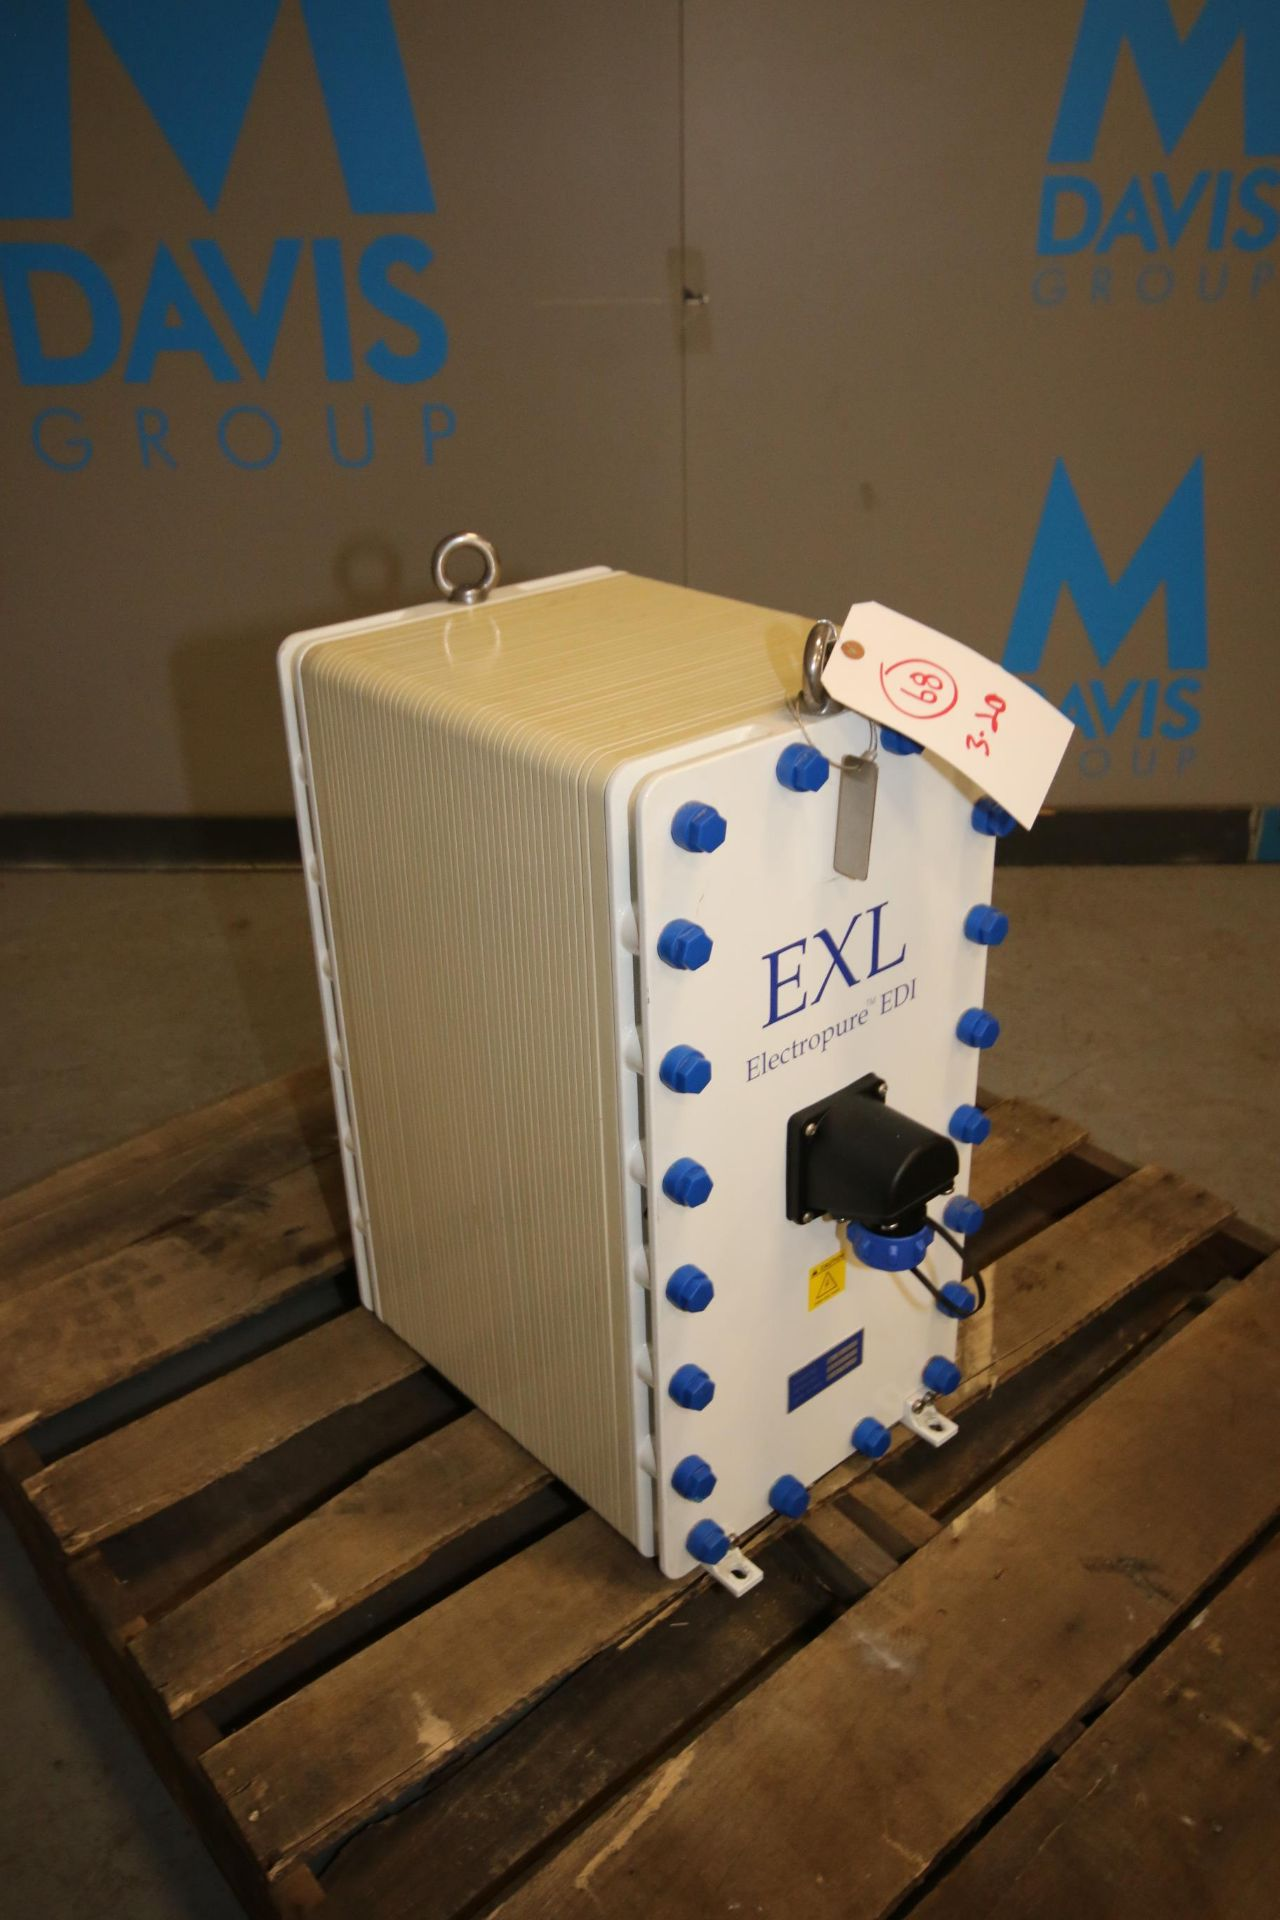 Lot 14 - ElectroPure Continuous Flow High Capacity EDI Water Module, M/N EXL-710-HTS, S/N 1710012, Low